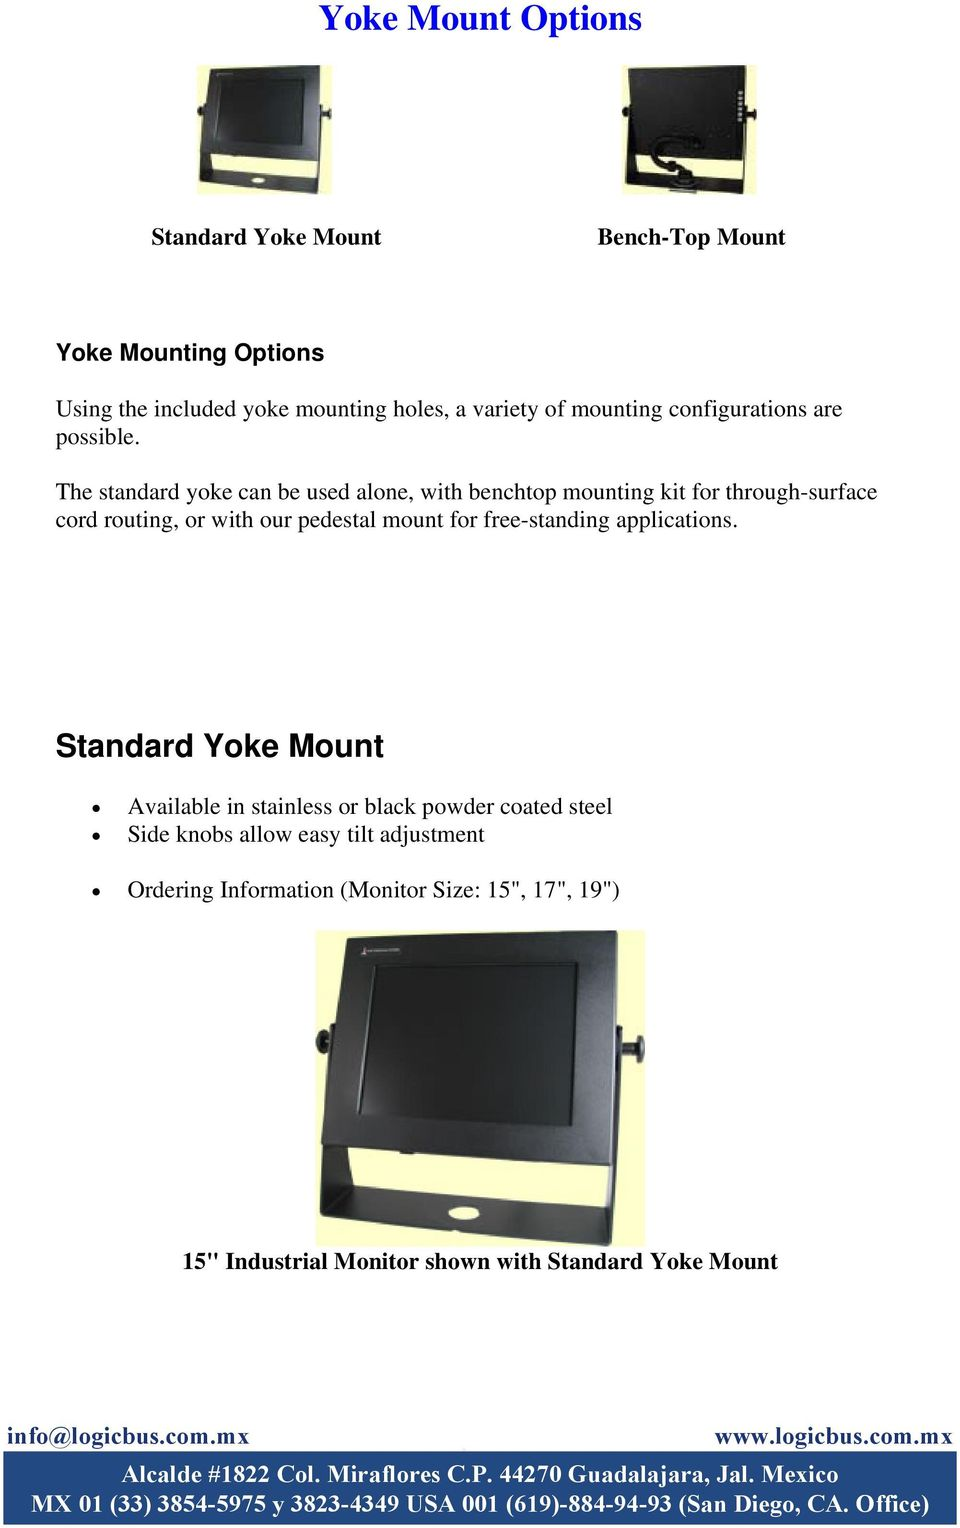 The standard yoke can be used alone, with benchtop mounting kit for through-surface cord routing, or with our pedestal mount for